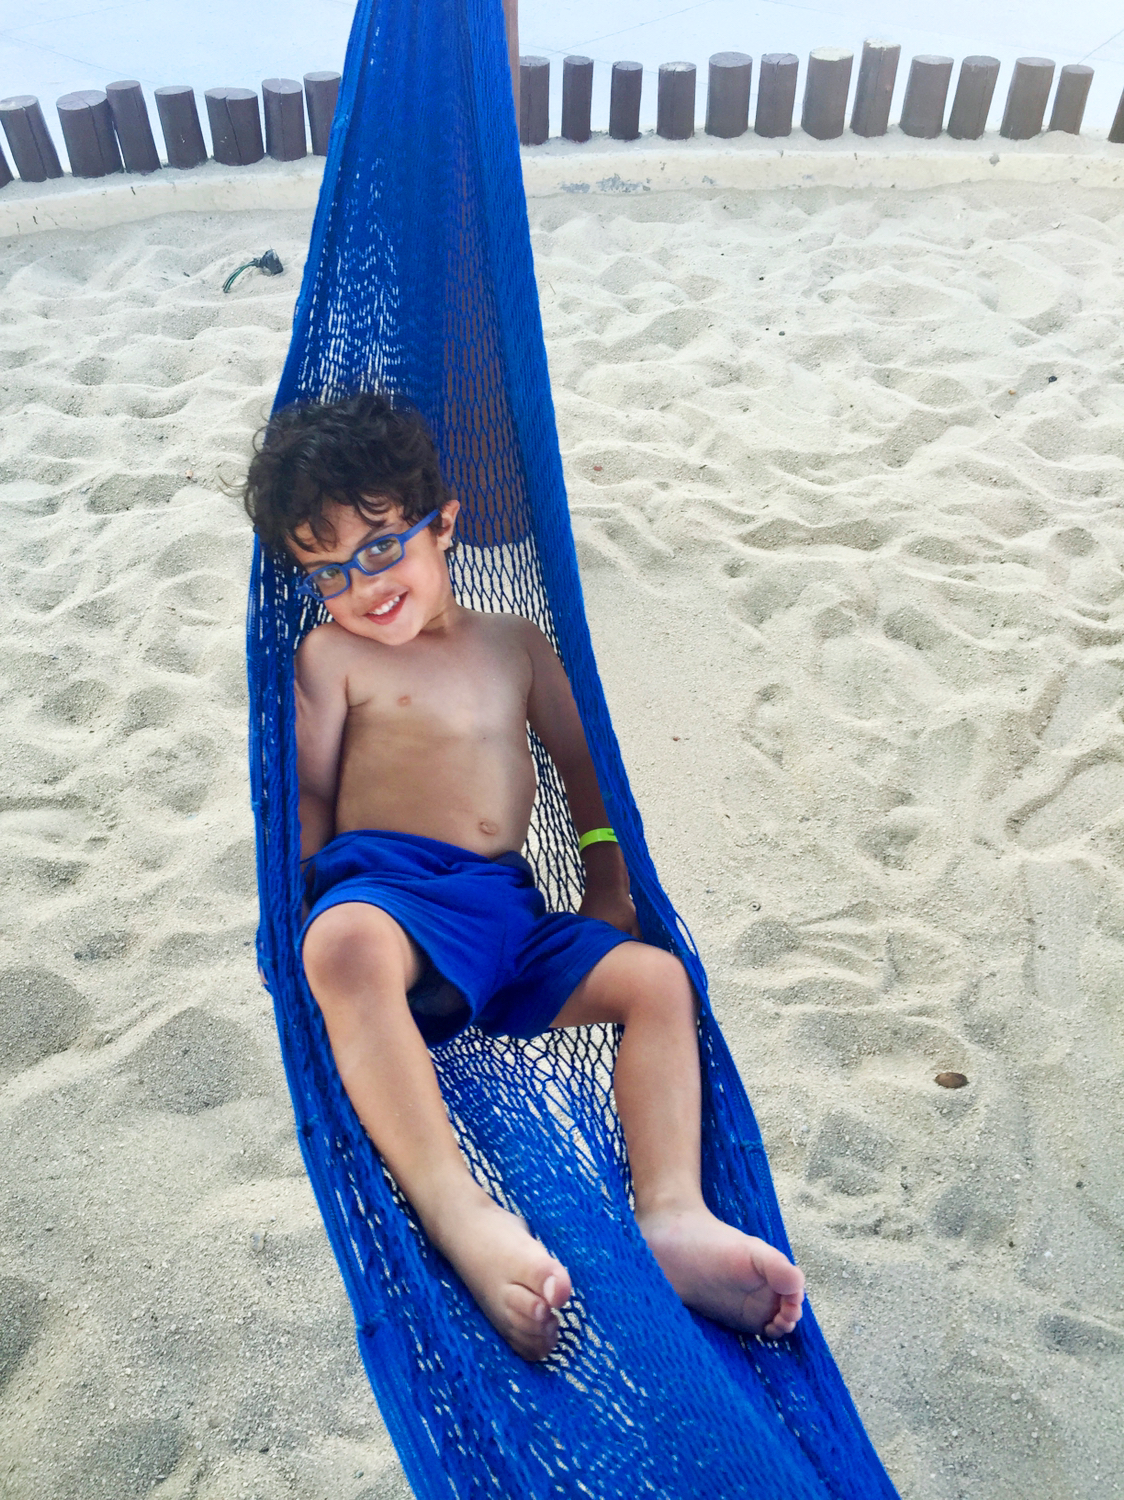 Three year-old Joshua in Cabo San Lucas, Mexico